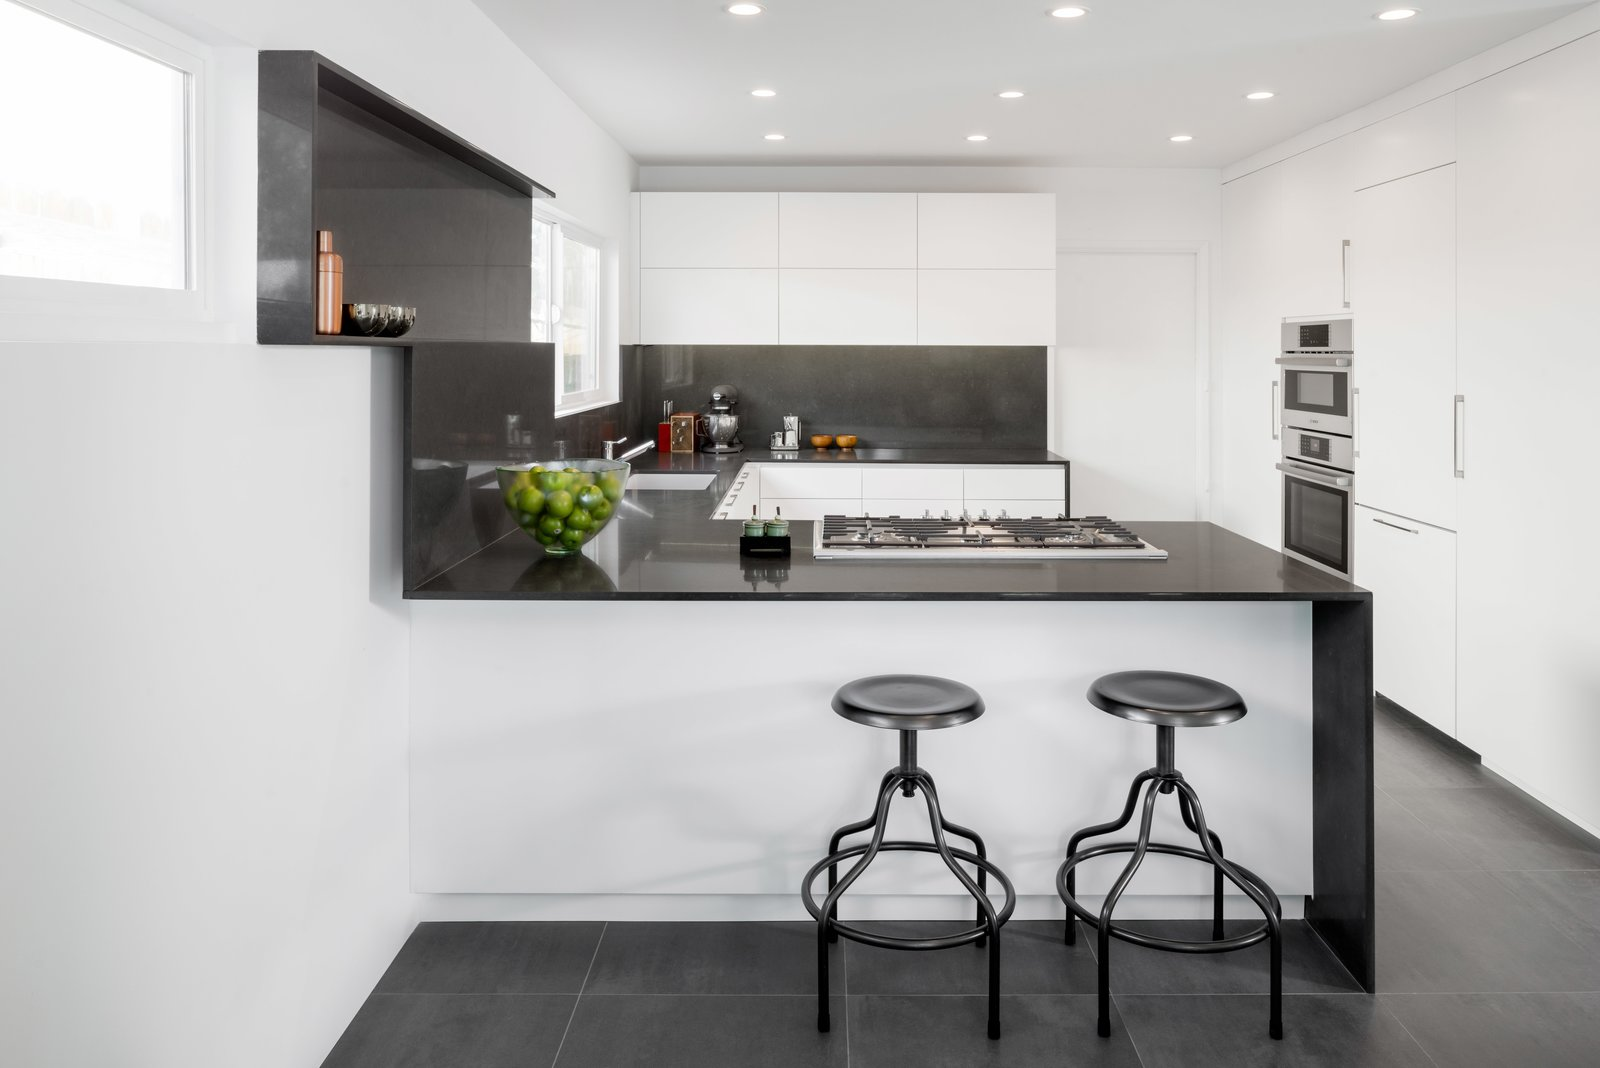 Designed to Disappear: The Case For the Minimal Kitchen